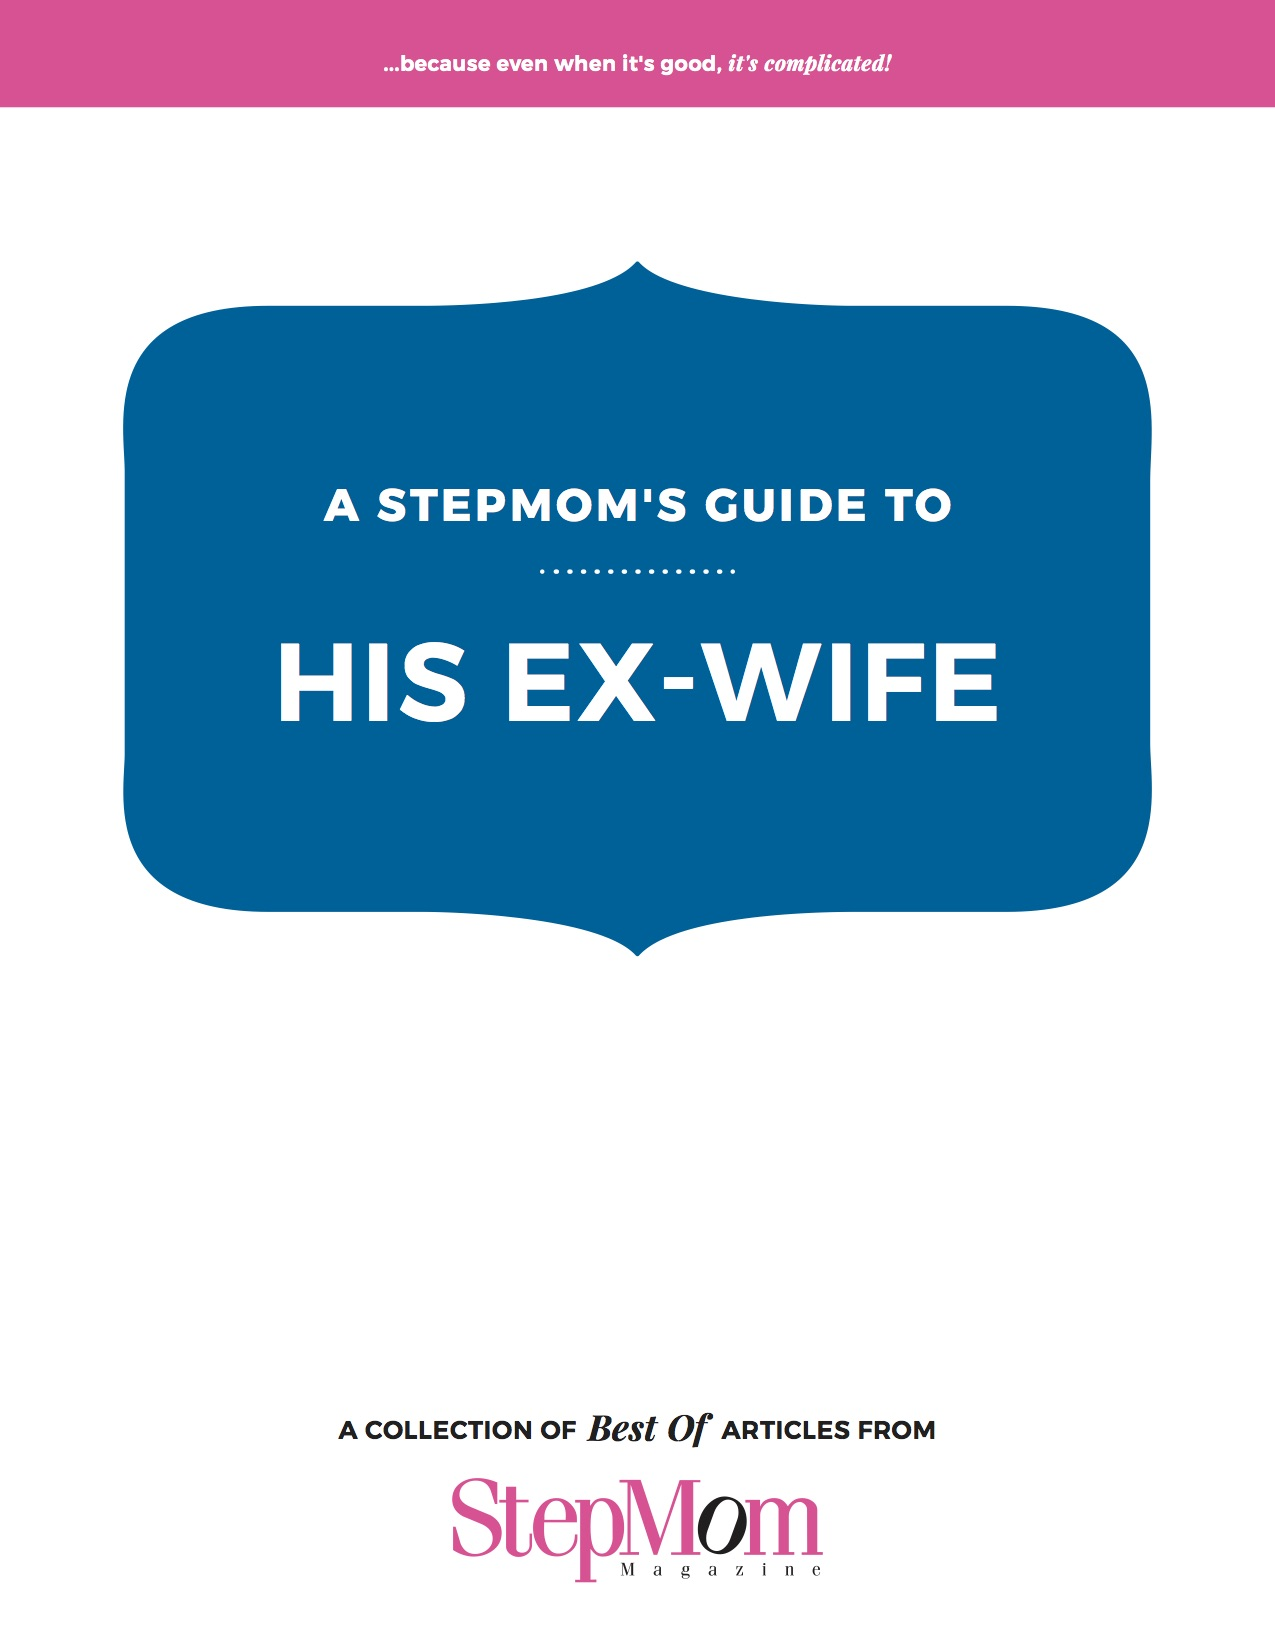 A Stepmom's Guide to His Ex-Wife